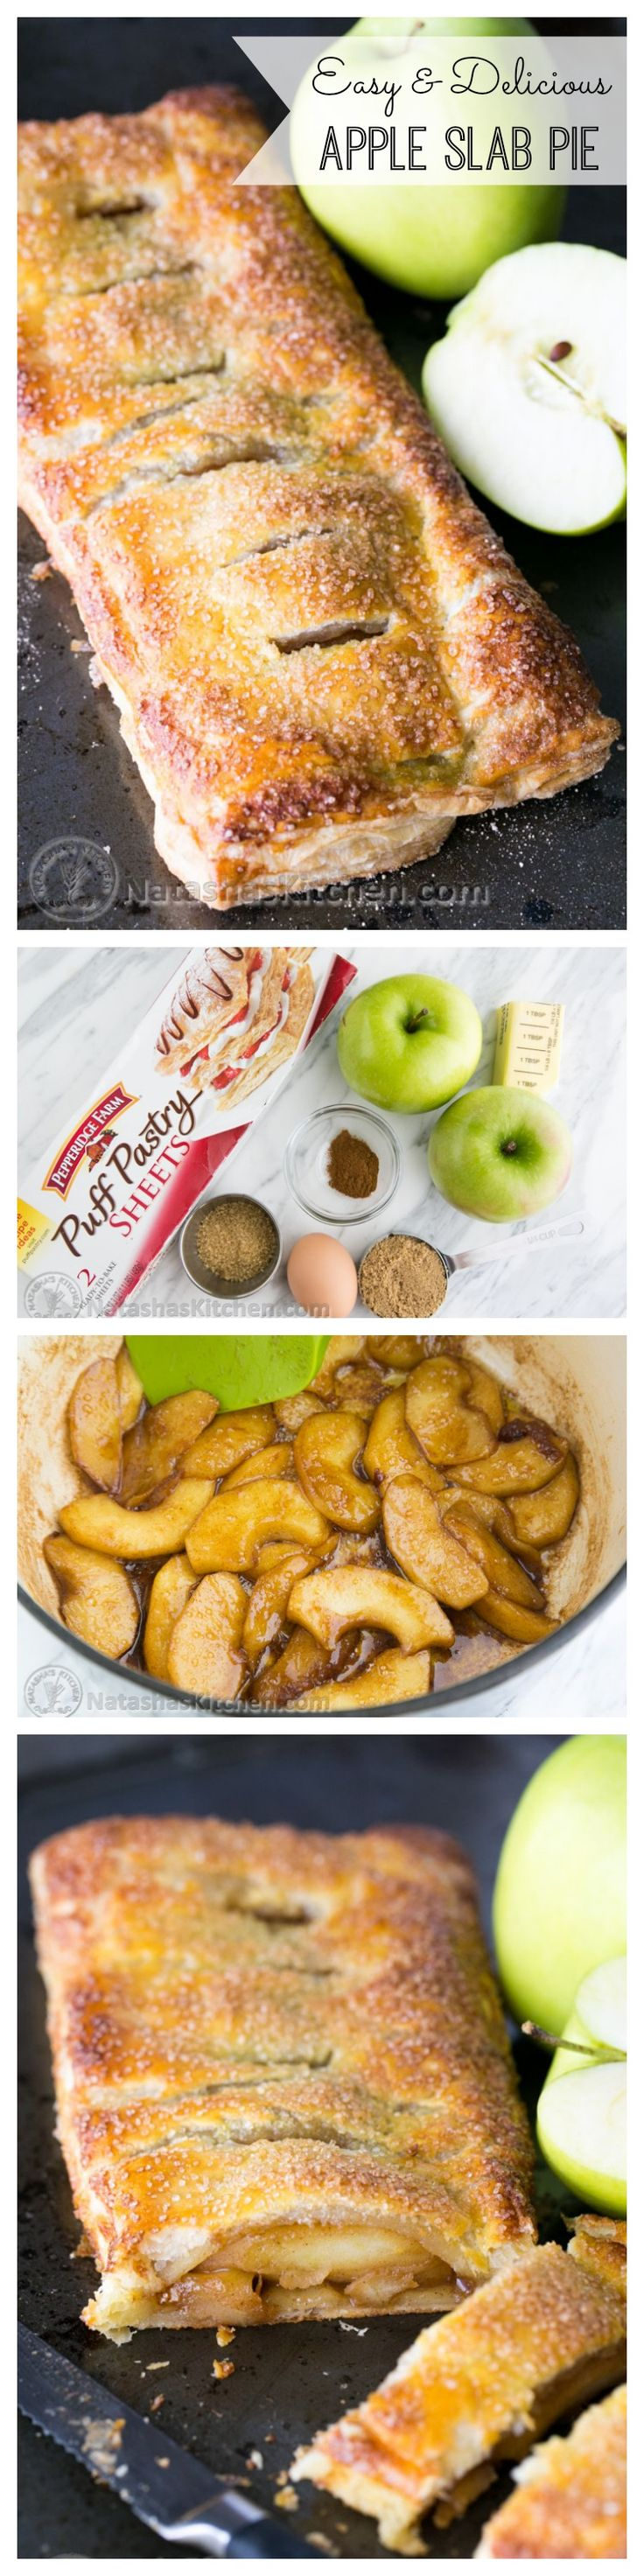 HOLIDAY BOARD: Apple Cinnamon Slab Pie Recipe